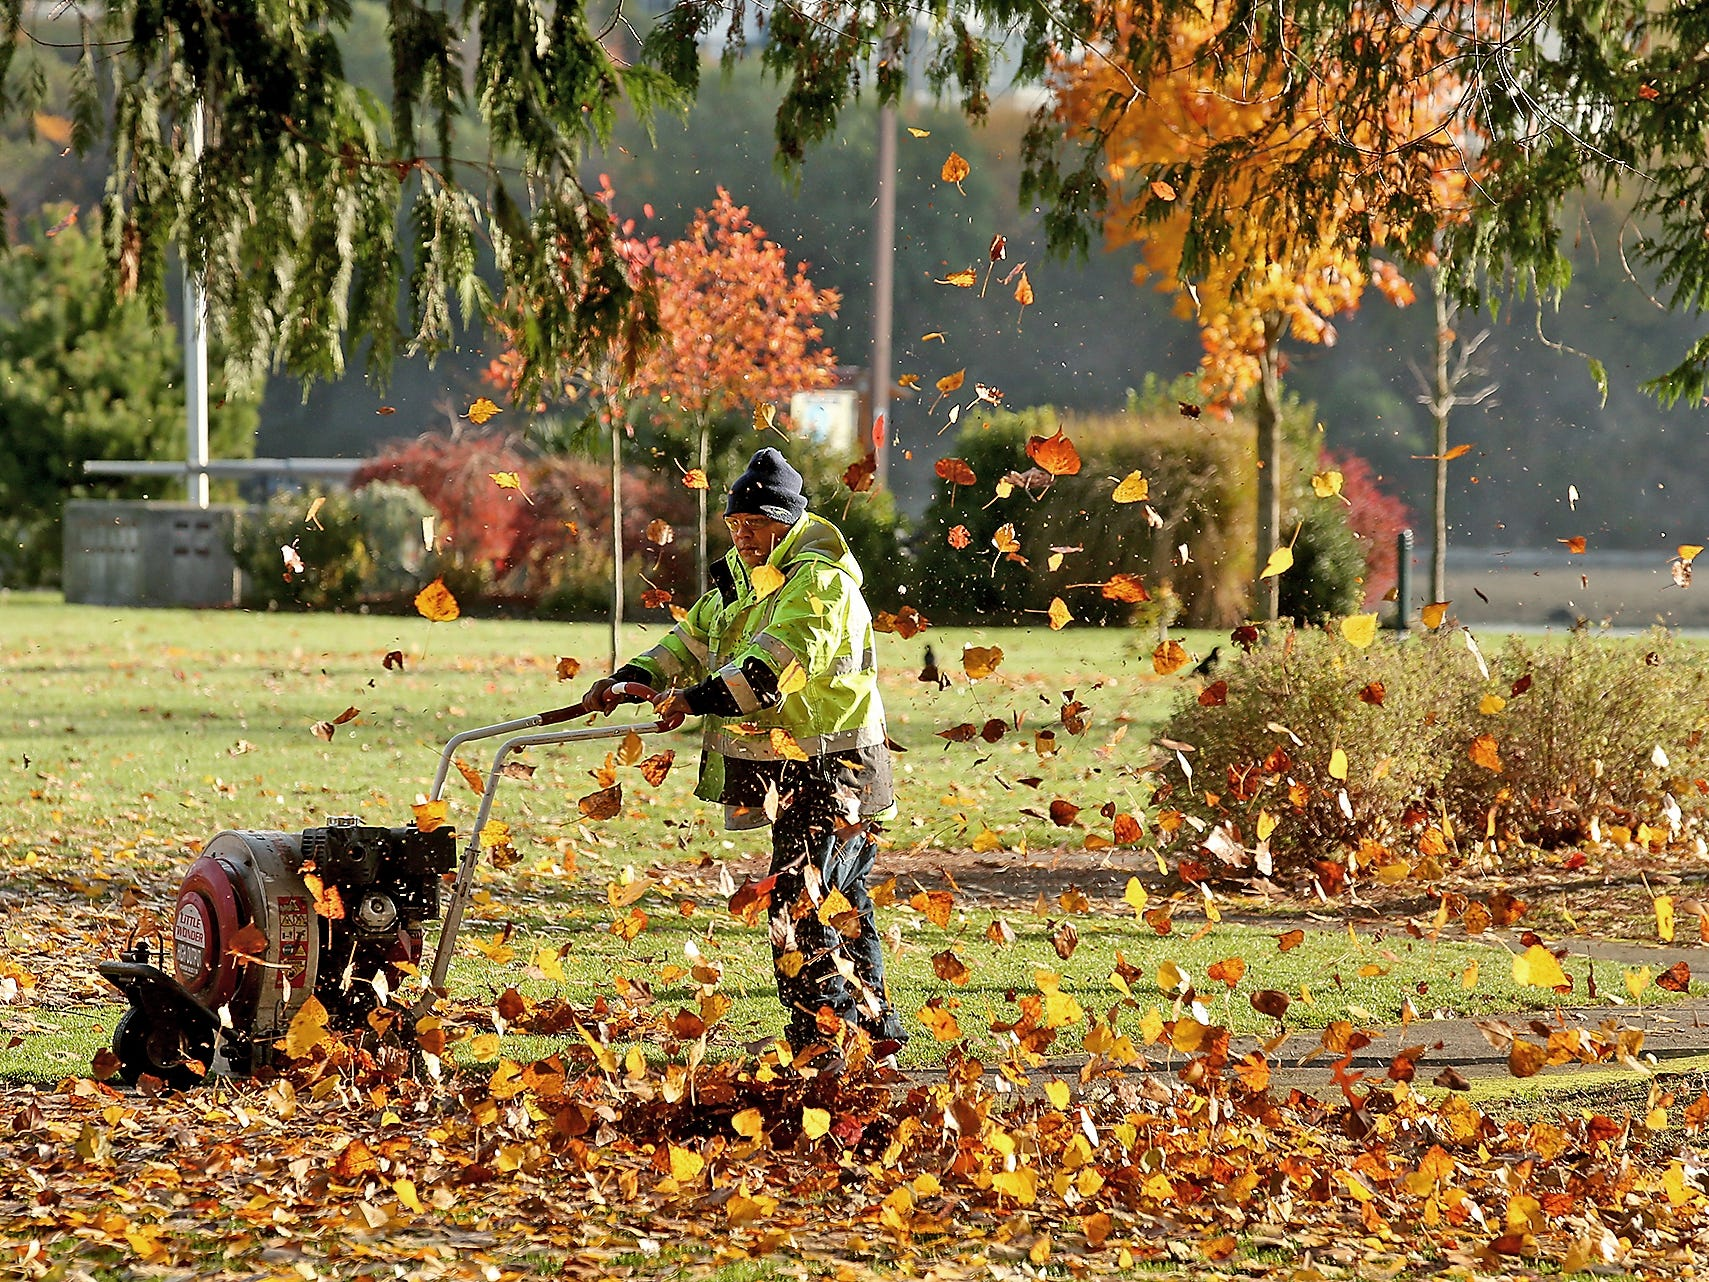 The leaves fly as Bremerton Parks Department's Rey Circulado blows them from the sidewalk in Bremerton's Evergreen Rotary Park on Monday, November 5, 2018.